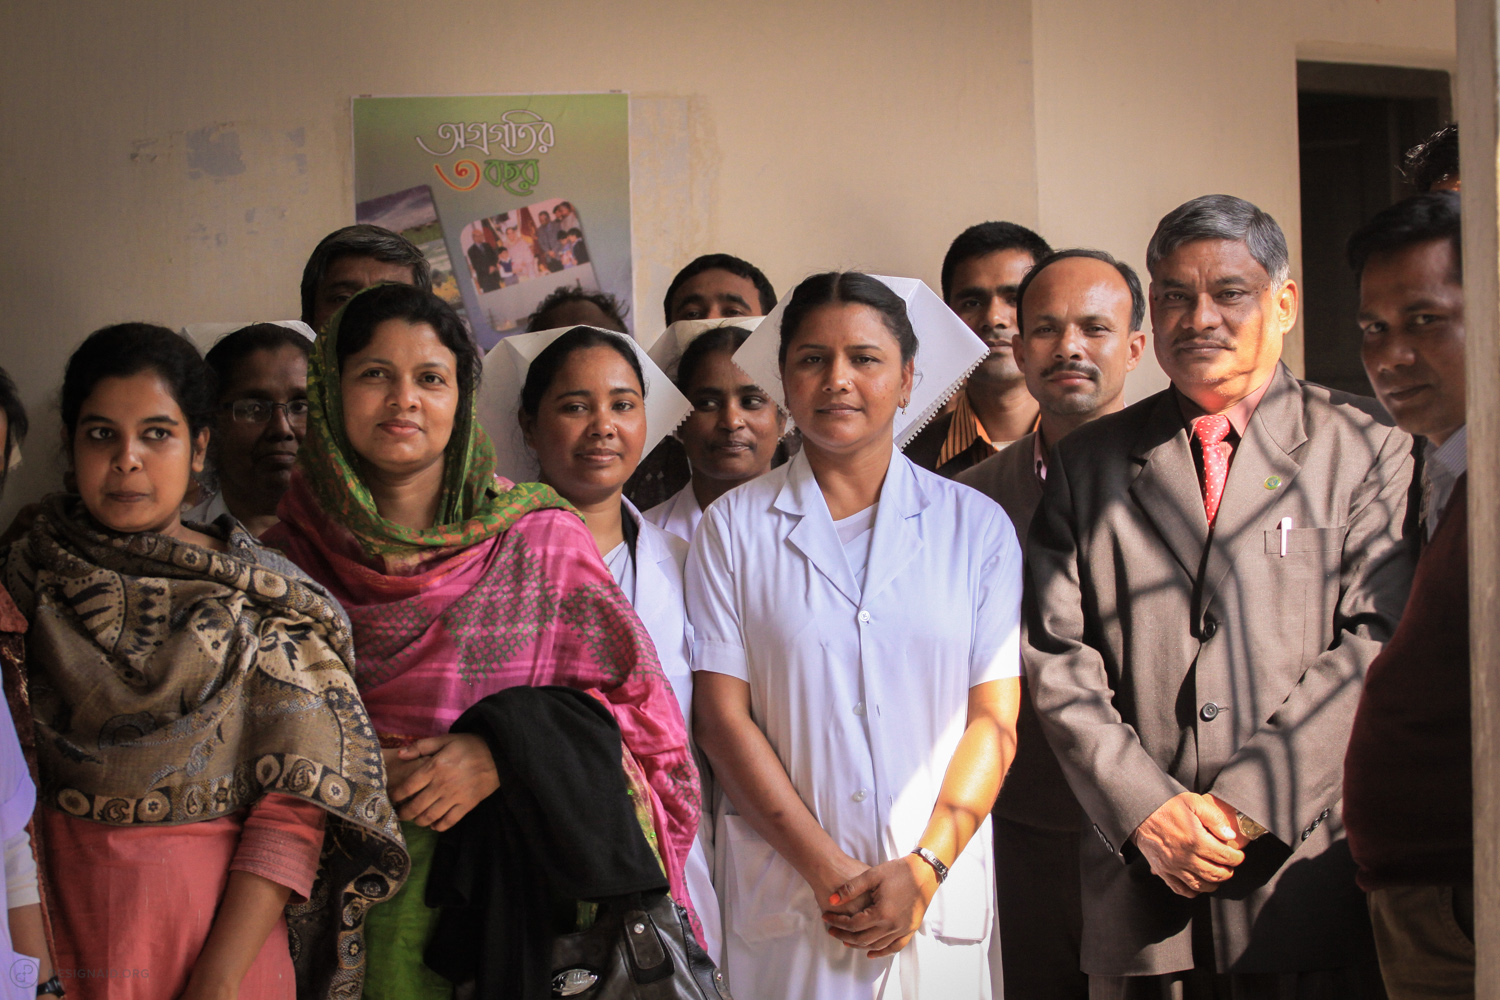 Some of the hospital staff and research team members